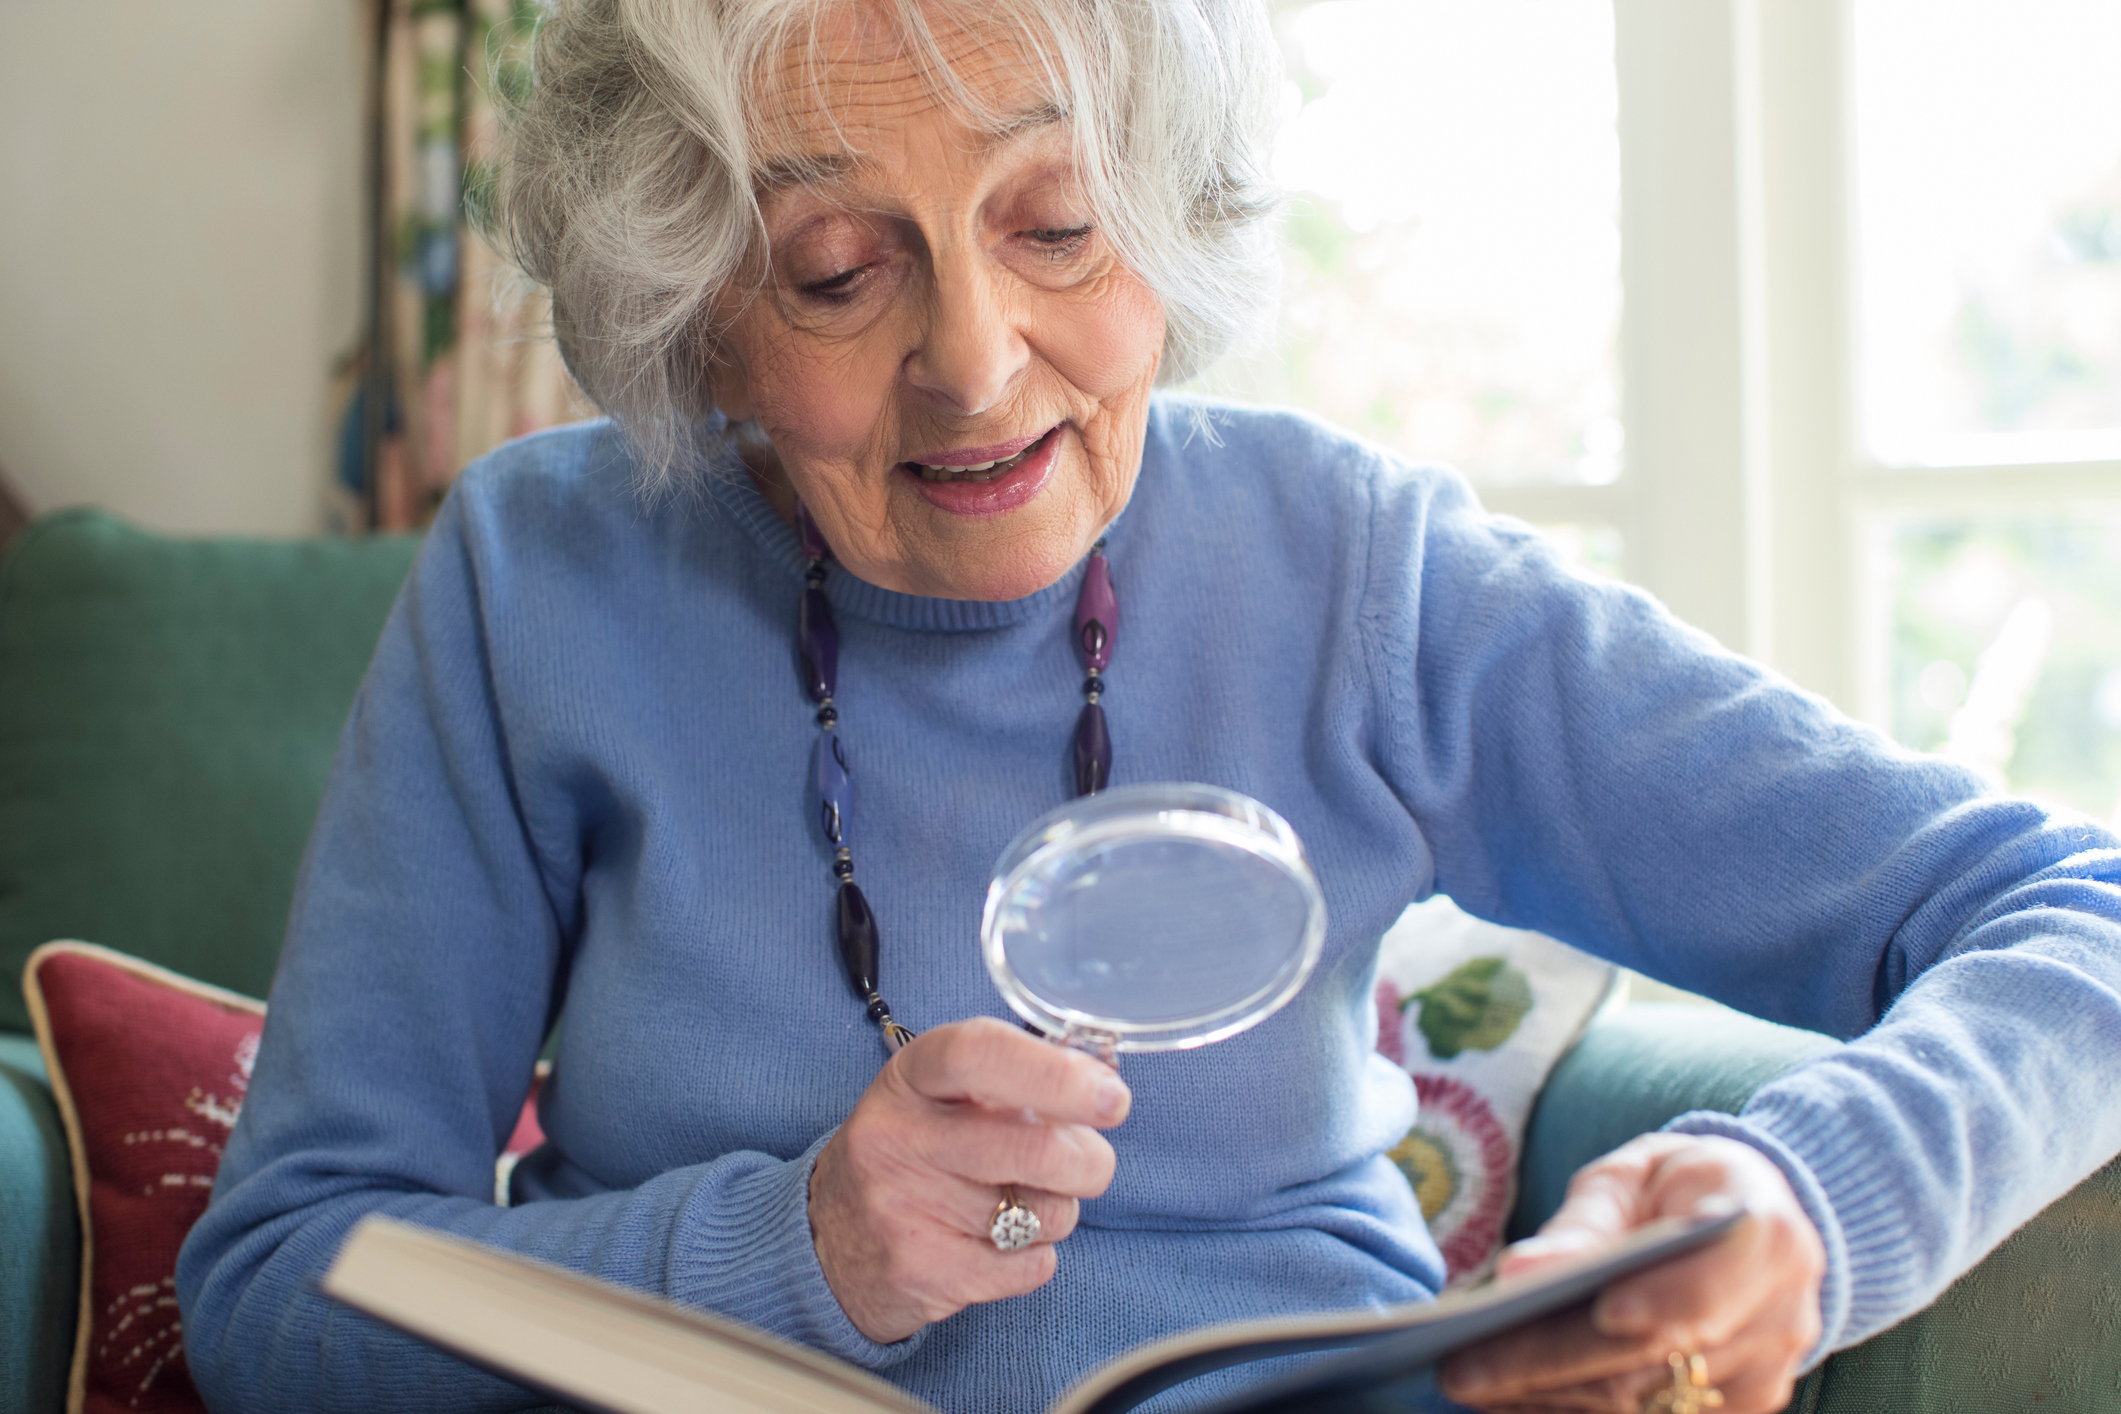 Senior Woman At Home Reading Book Using Magnifying Glass